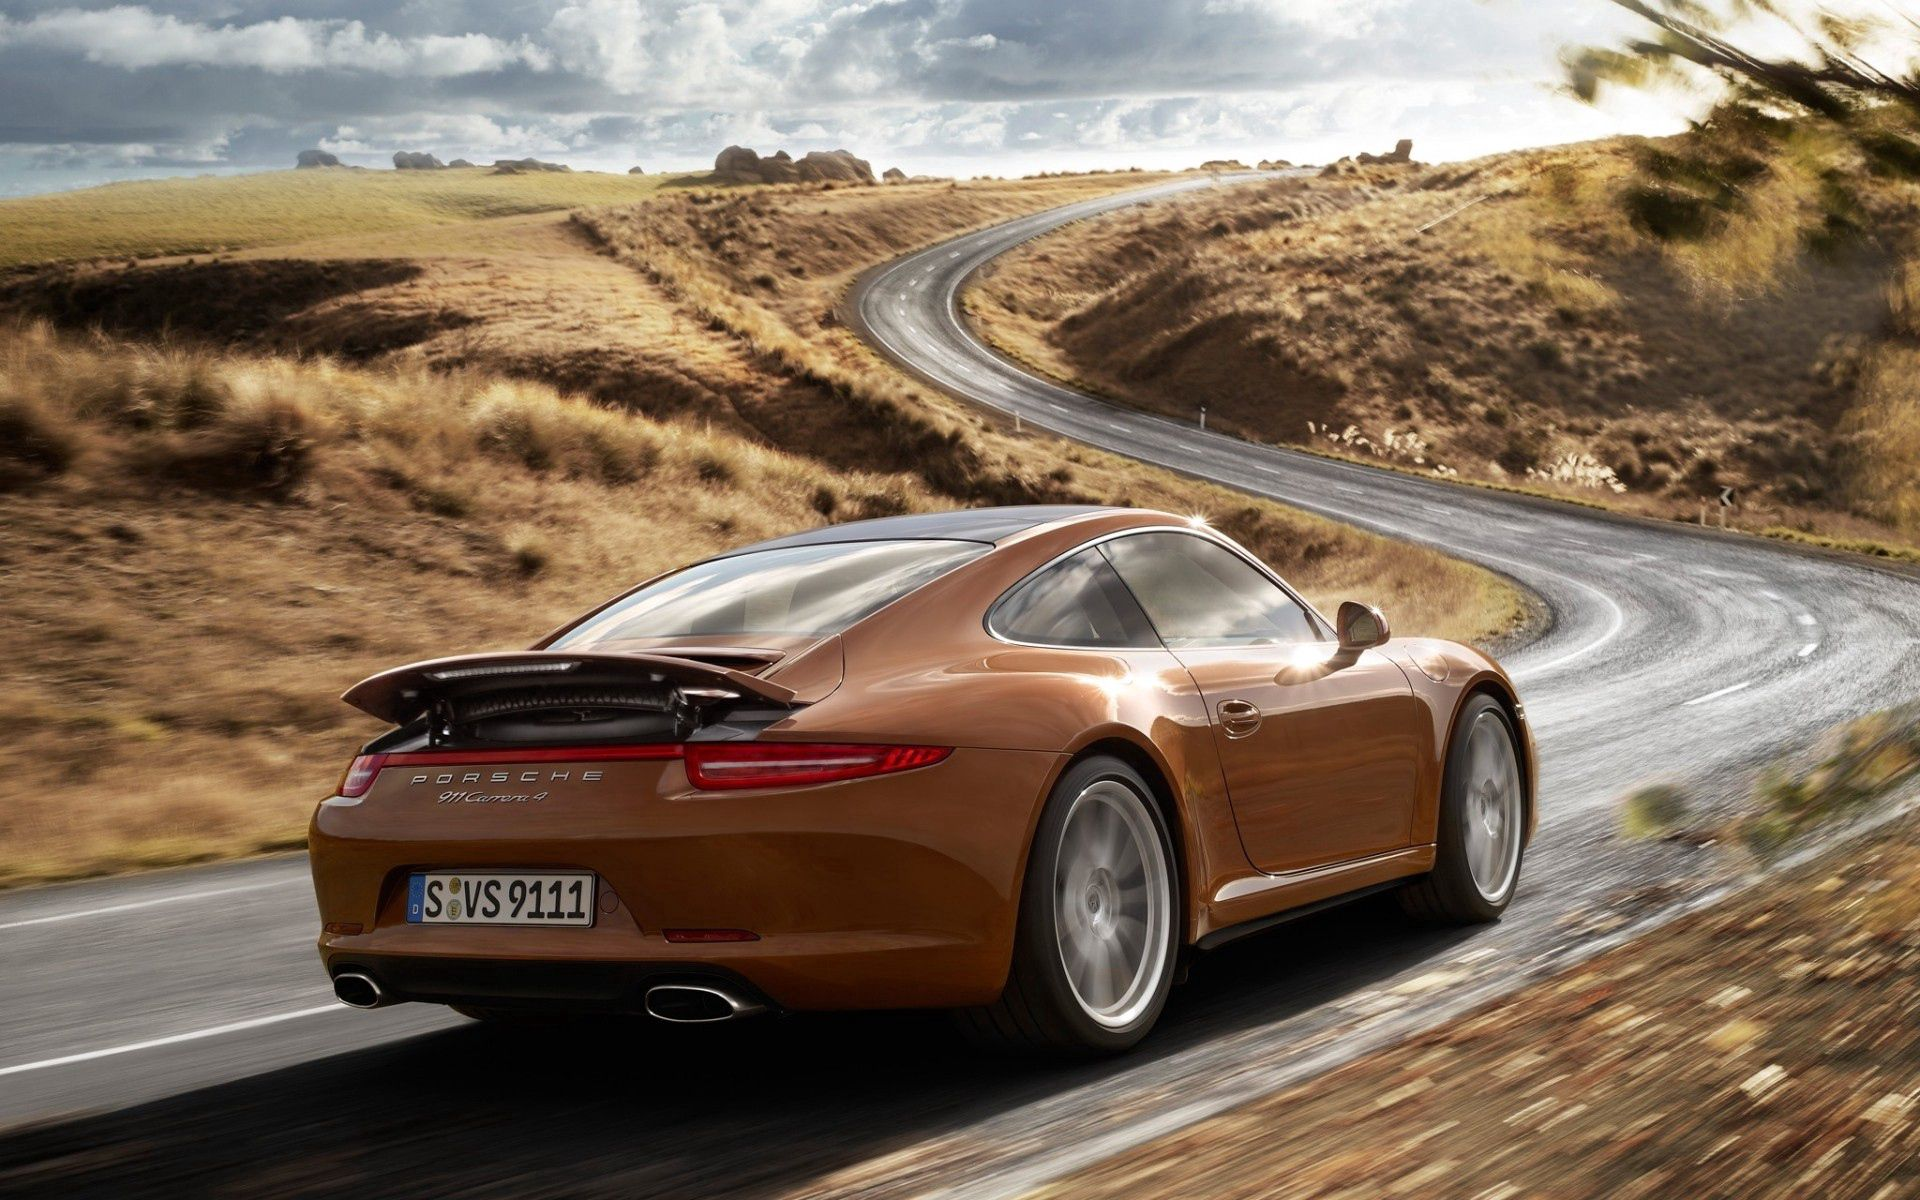 133770 Screensavers and Wallpapers Porsche for phone. Download Porsche, Cars, Road, Car, Machine, Back View, Rear View, 911, Coupe, Carrera 4 pictures for free